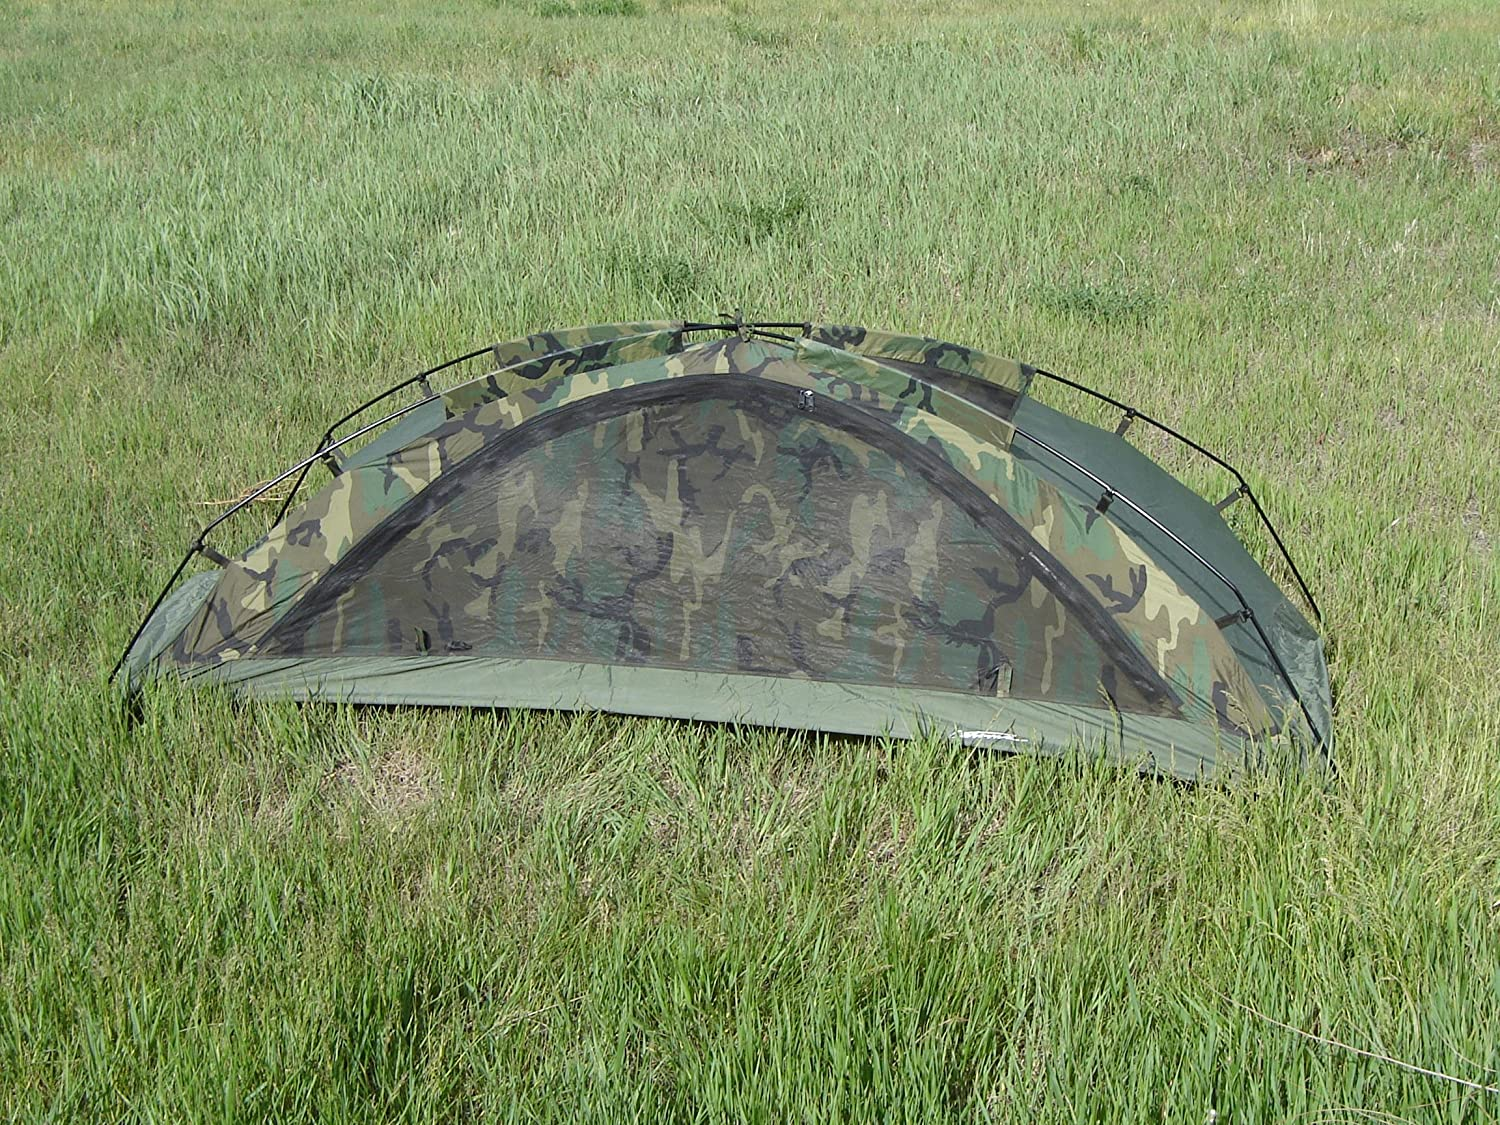 Amazon.com  Catoma Stealth 1 Tactical Tent - Inidual Combat Shelter  Backpacking Tents  Sports u0026 Outdoors & Amazon.com : Catoma Stealth 1 Tactical Tent - Inidual Combat ...